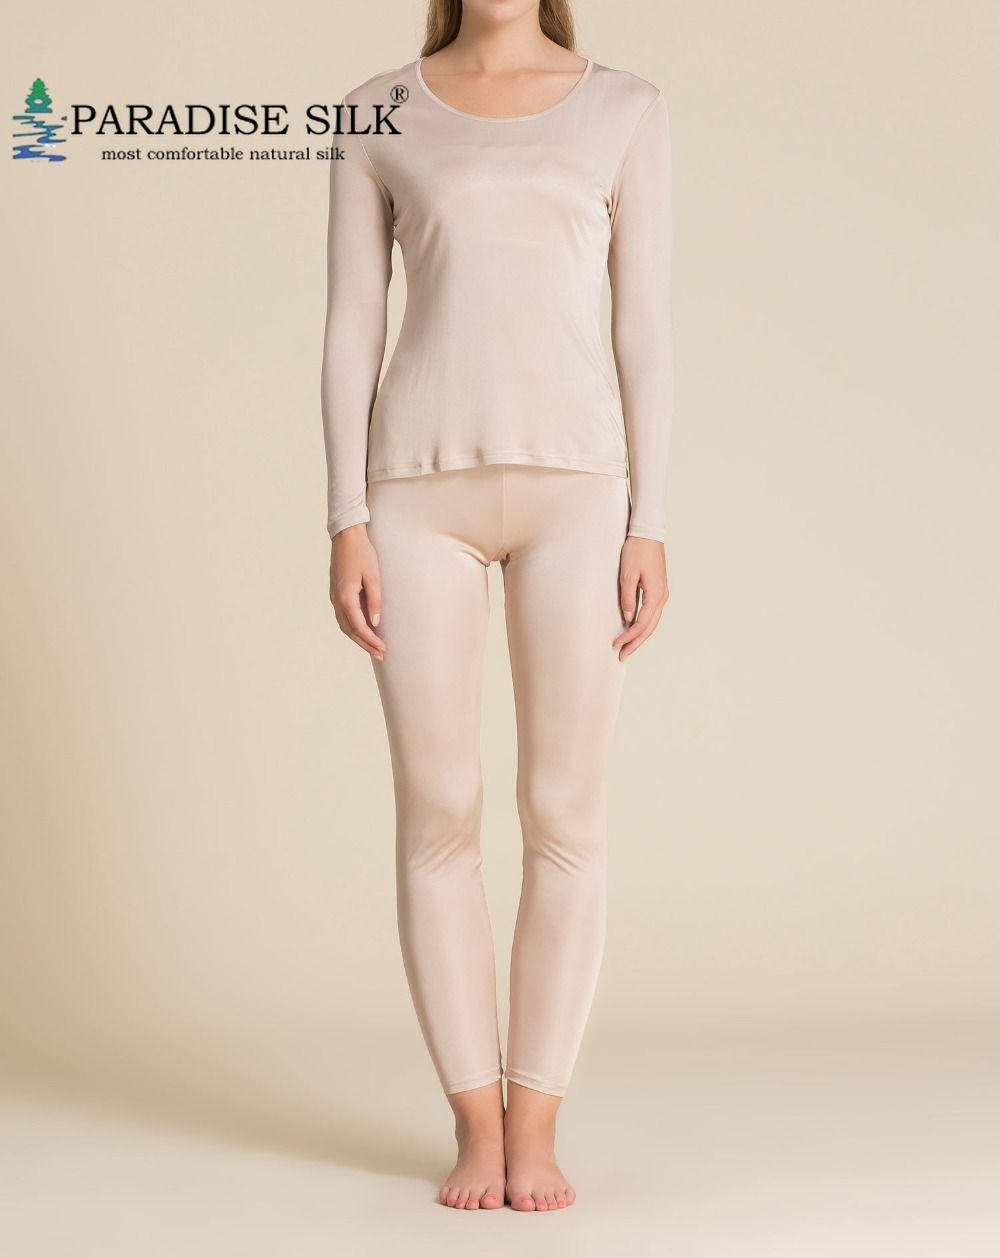 Special Offer Women Long Johns 100% Natural Silk Knit Women Underwear Top And Bottom Set Size US XS S M L